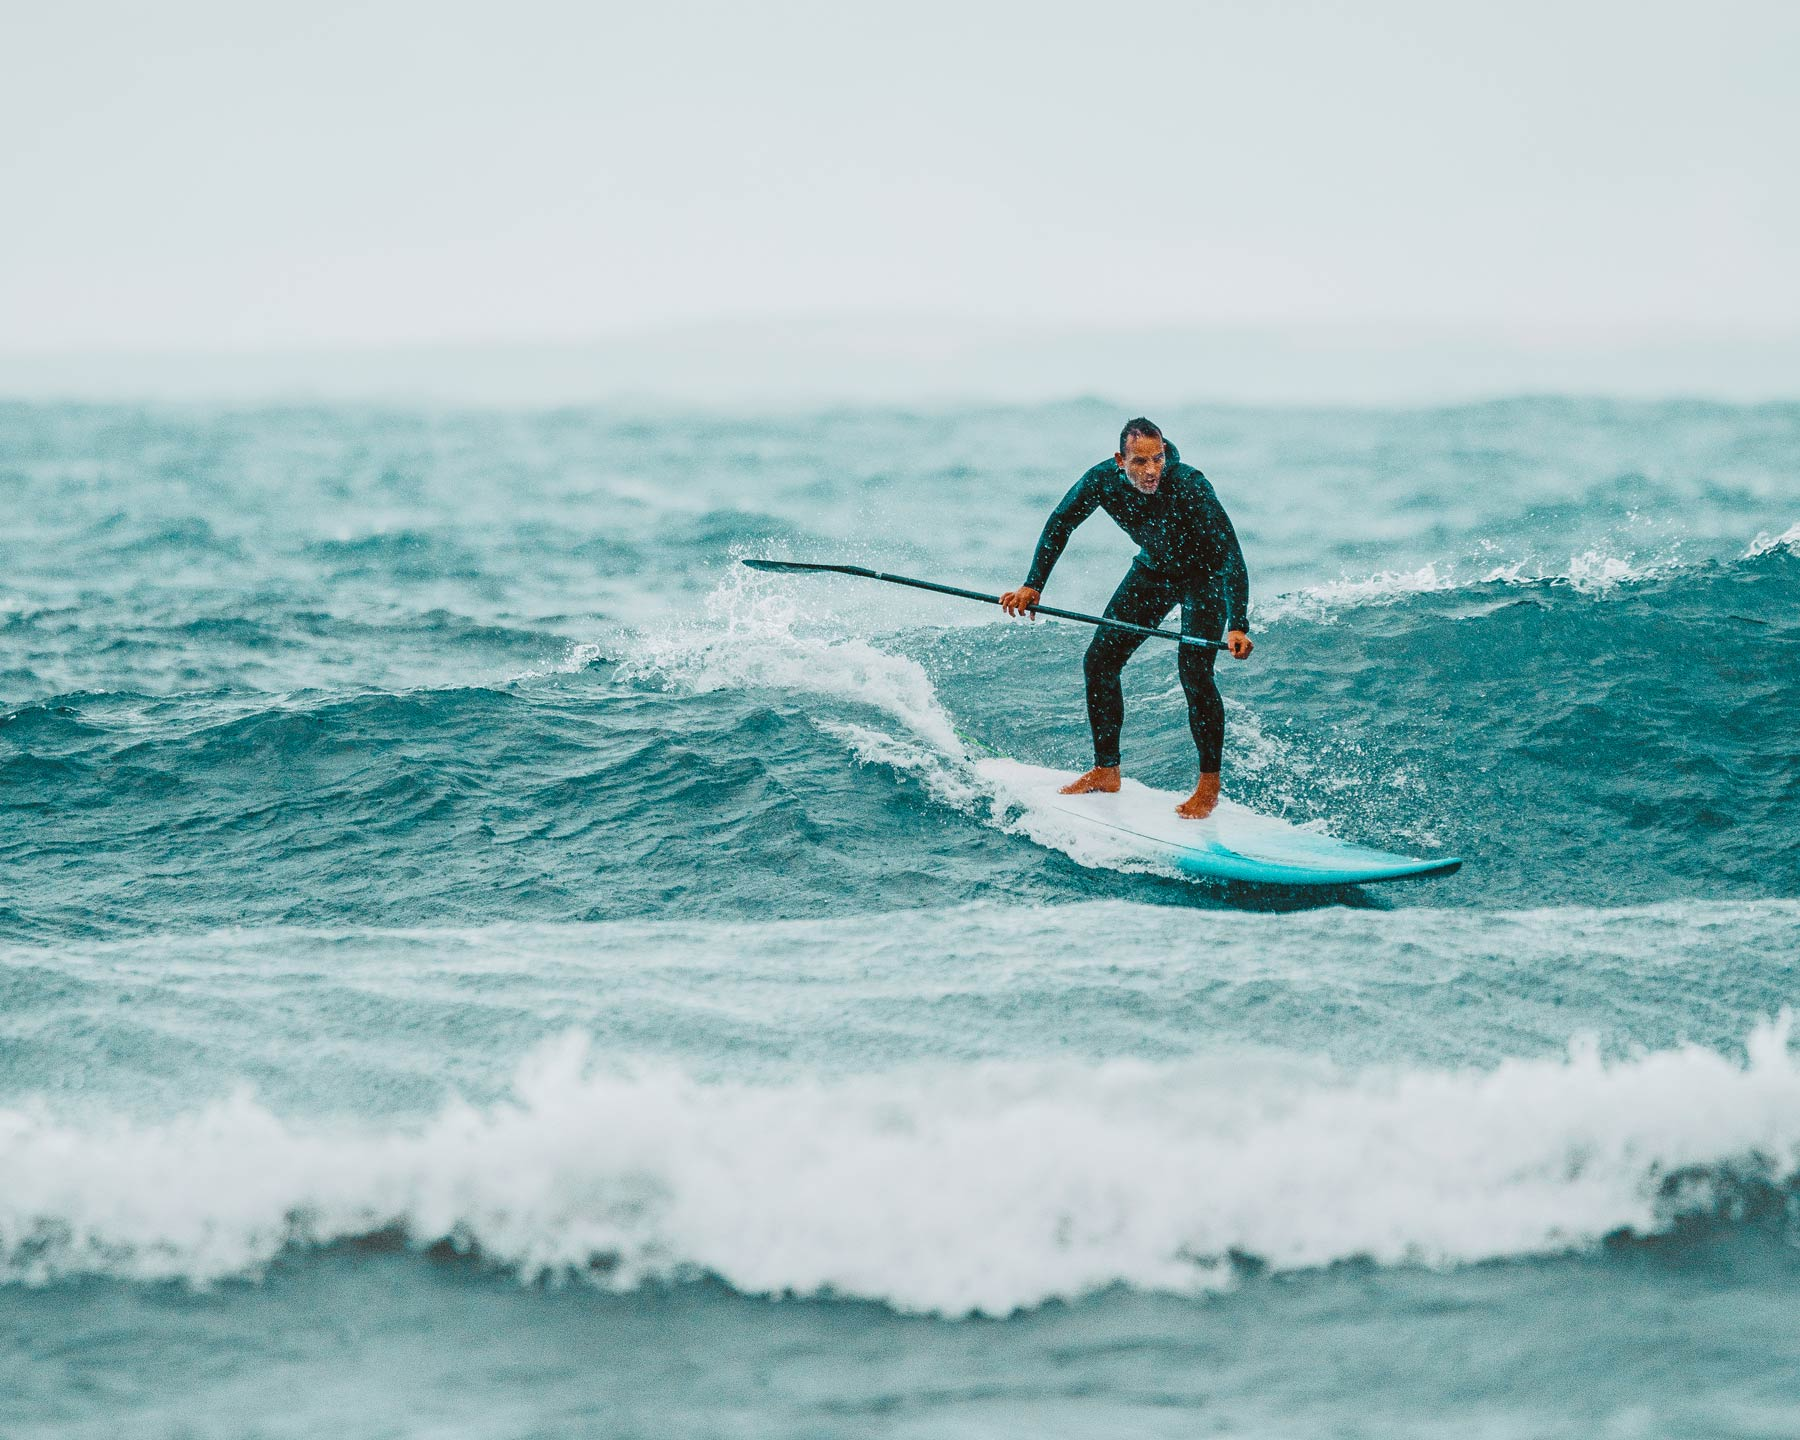 SUP Surfer Collingwood by Jenna Albany